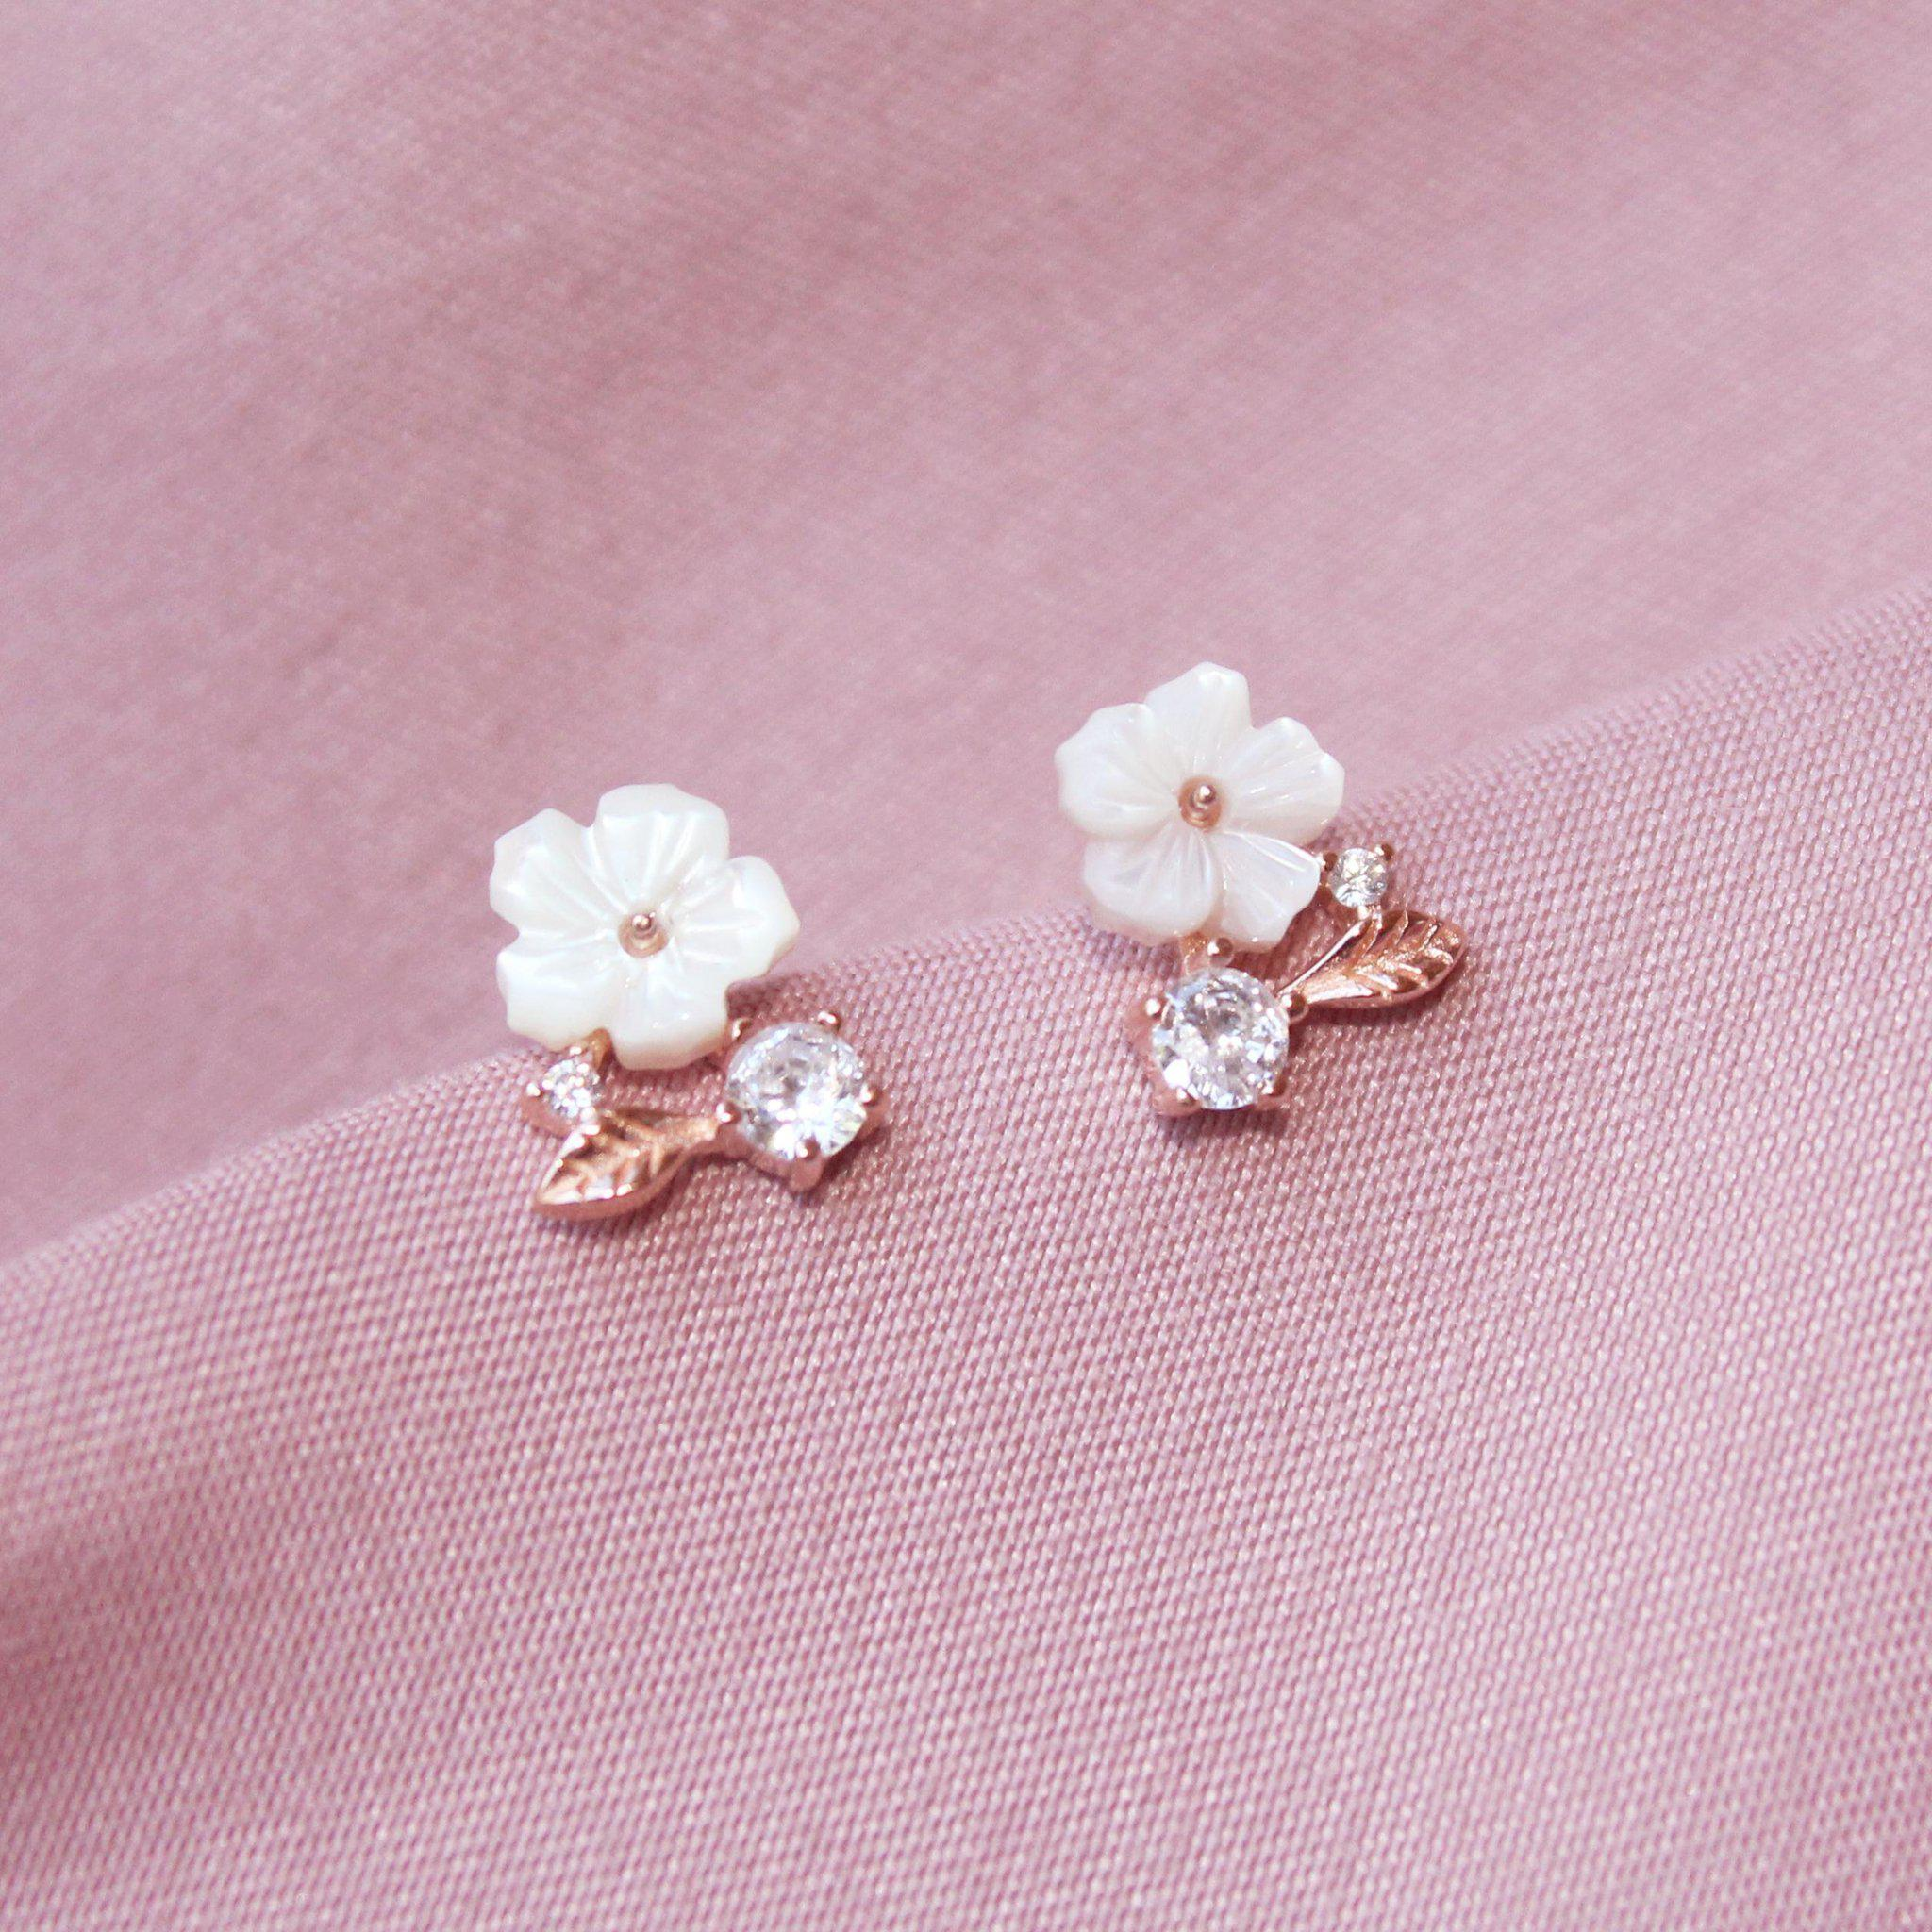 Spring Floral Earrings-Limited Edition-La Meno